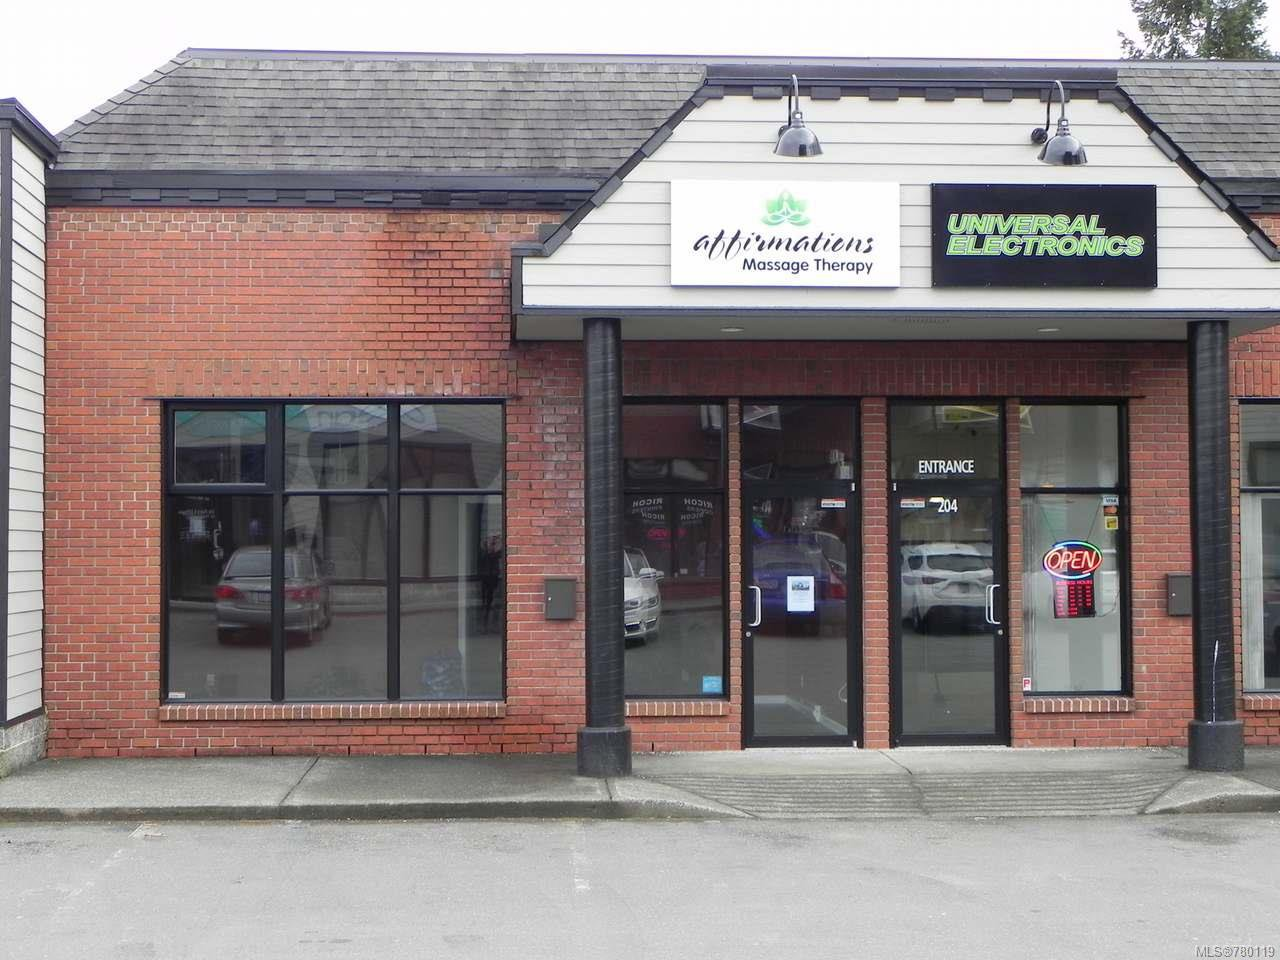 Main Photo: 203 1995 CLIFFE Avenue in COURTENAY: CV Courtenay City Mixed Use for lease (Comox Valley)  : MLS®# 780119